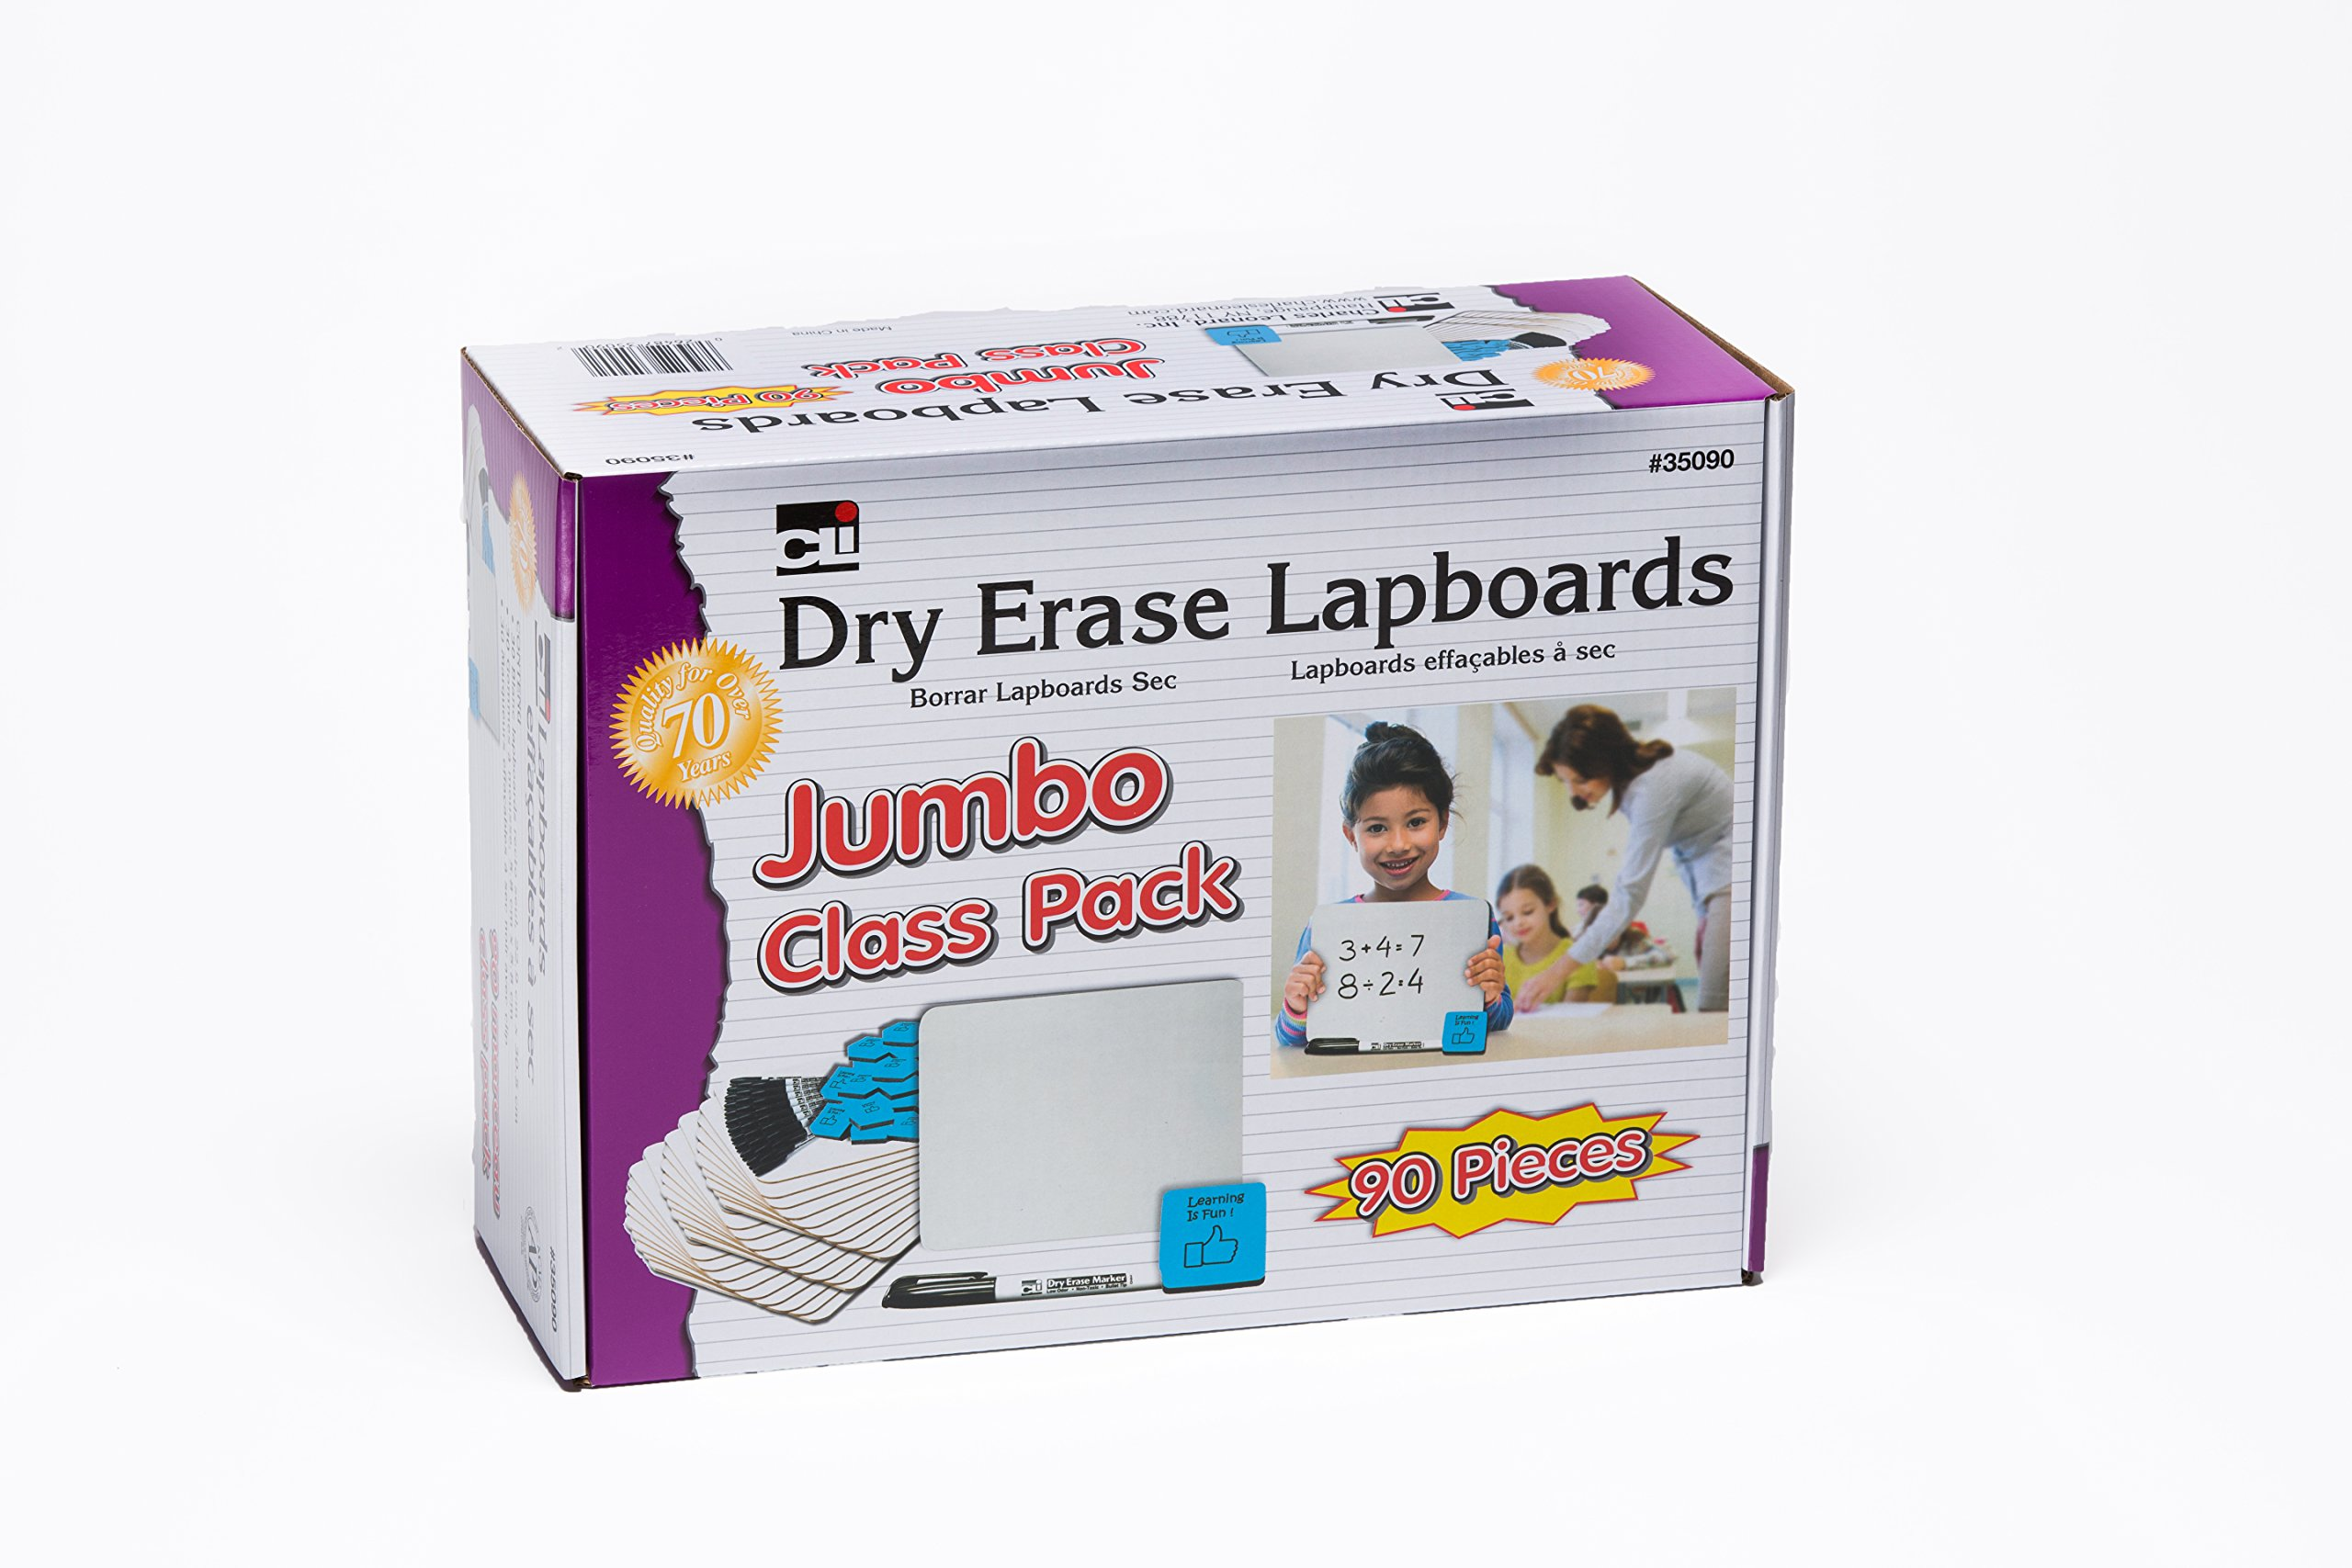 Charles Leonard Dry Erase Board Class Pack - Includes 30 Each 9 x 12 Inch Lapboards, Foam/Felt Erasers and Markers (35090) by Charles Leonard (Image #2)